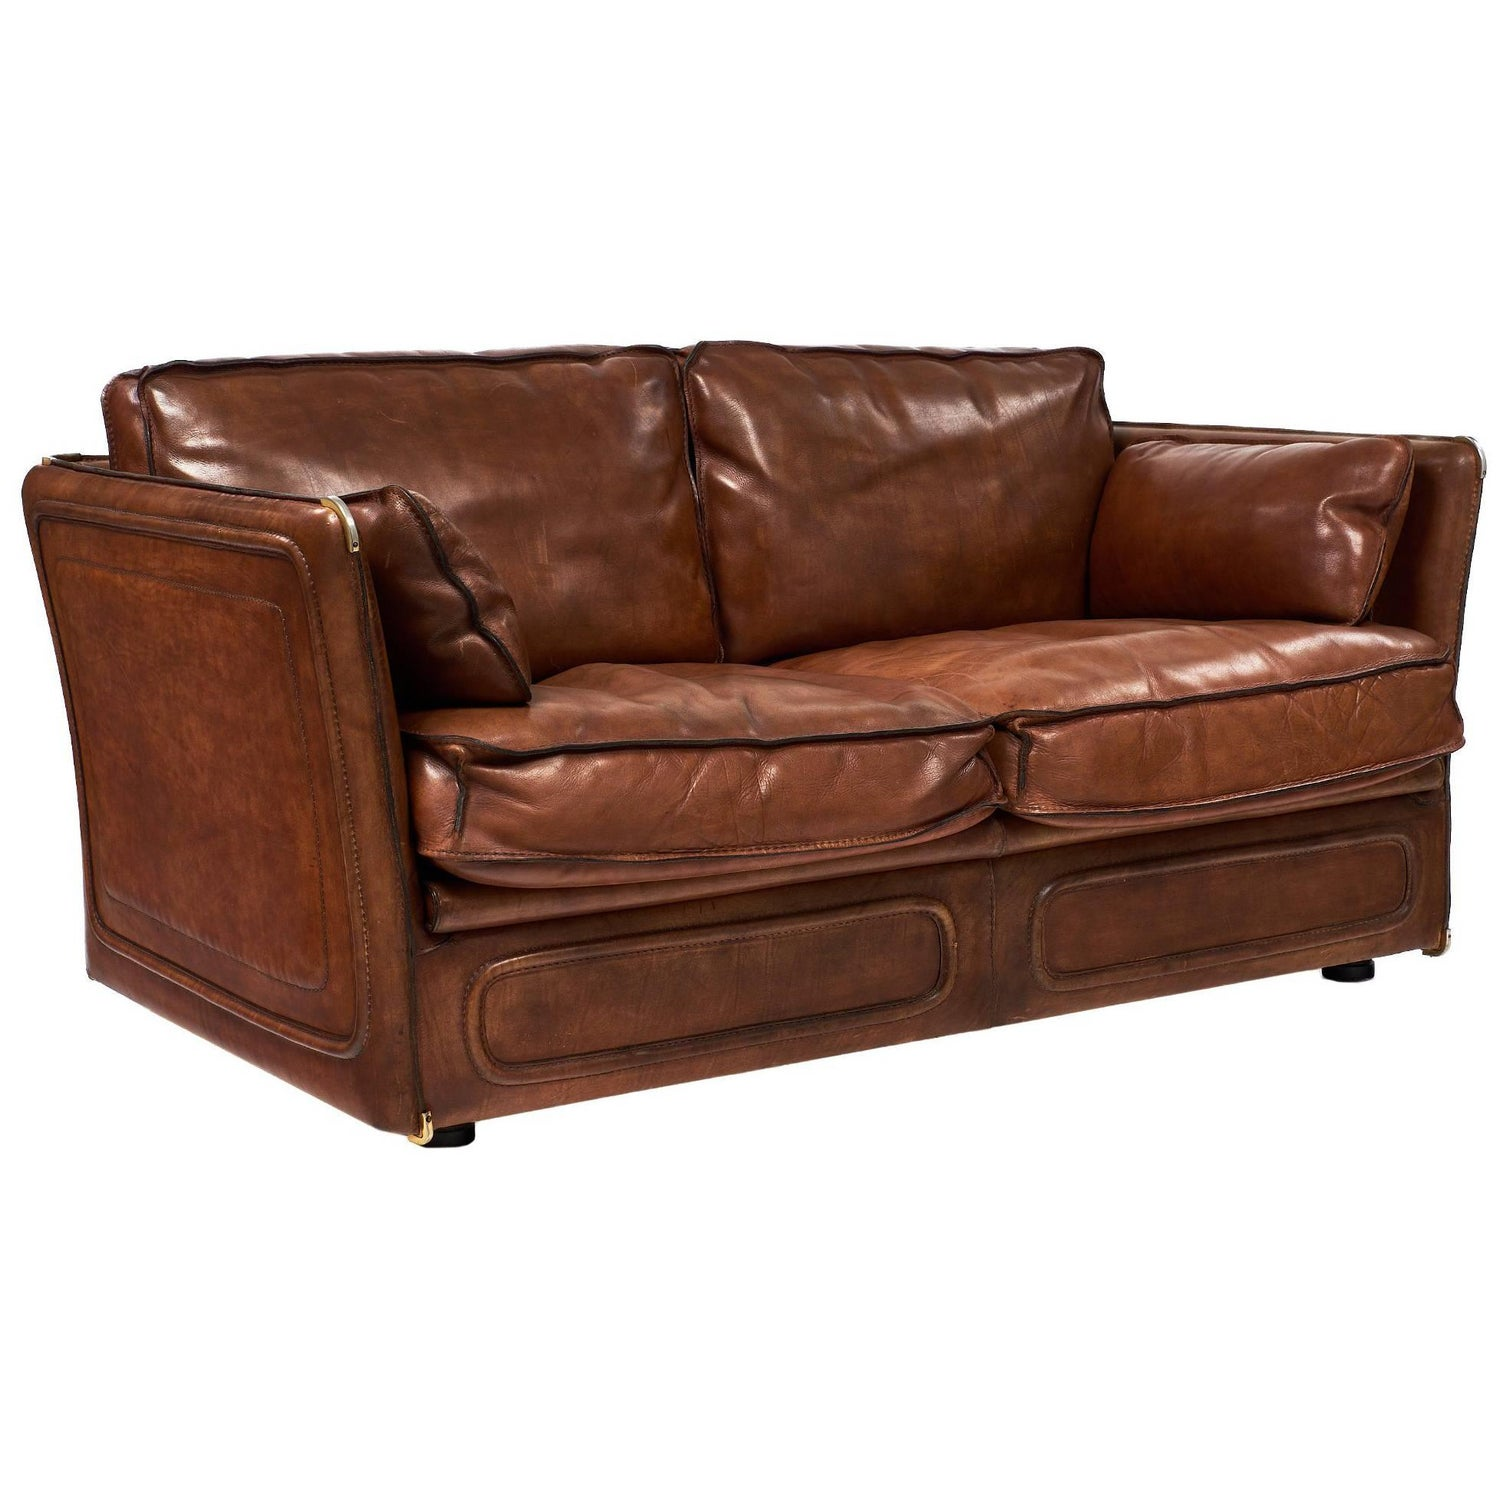 Hermes Style Buffalo Leather French Loveseat For Sale at 1stdibs